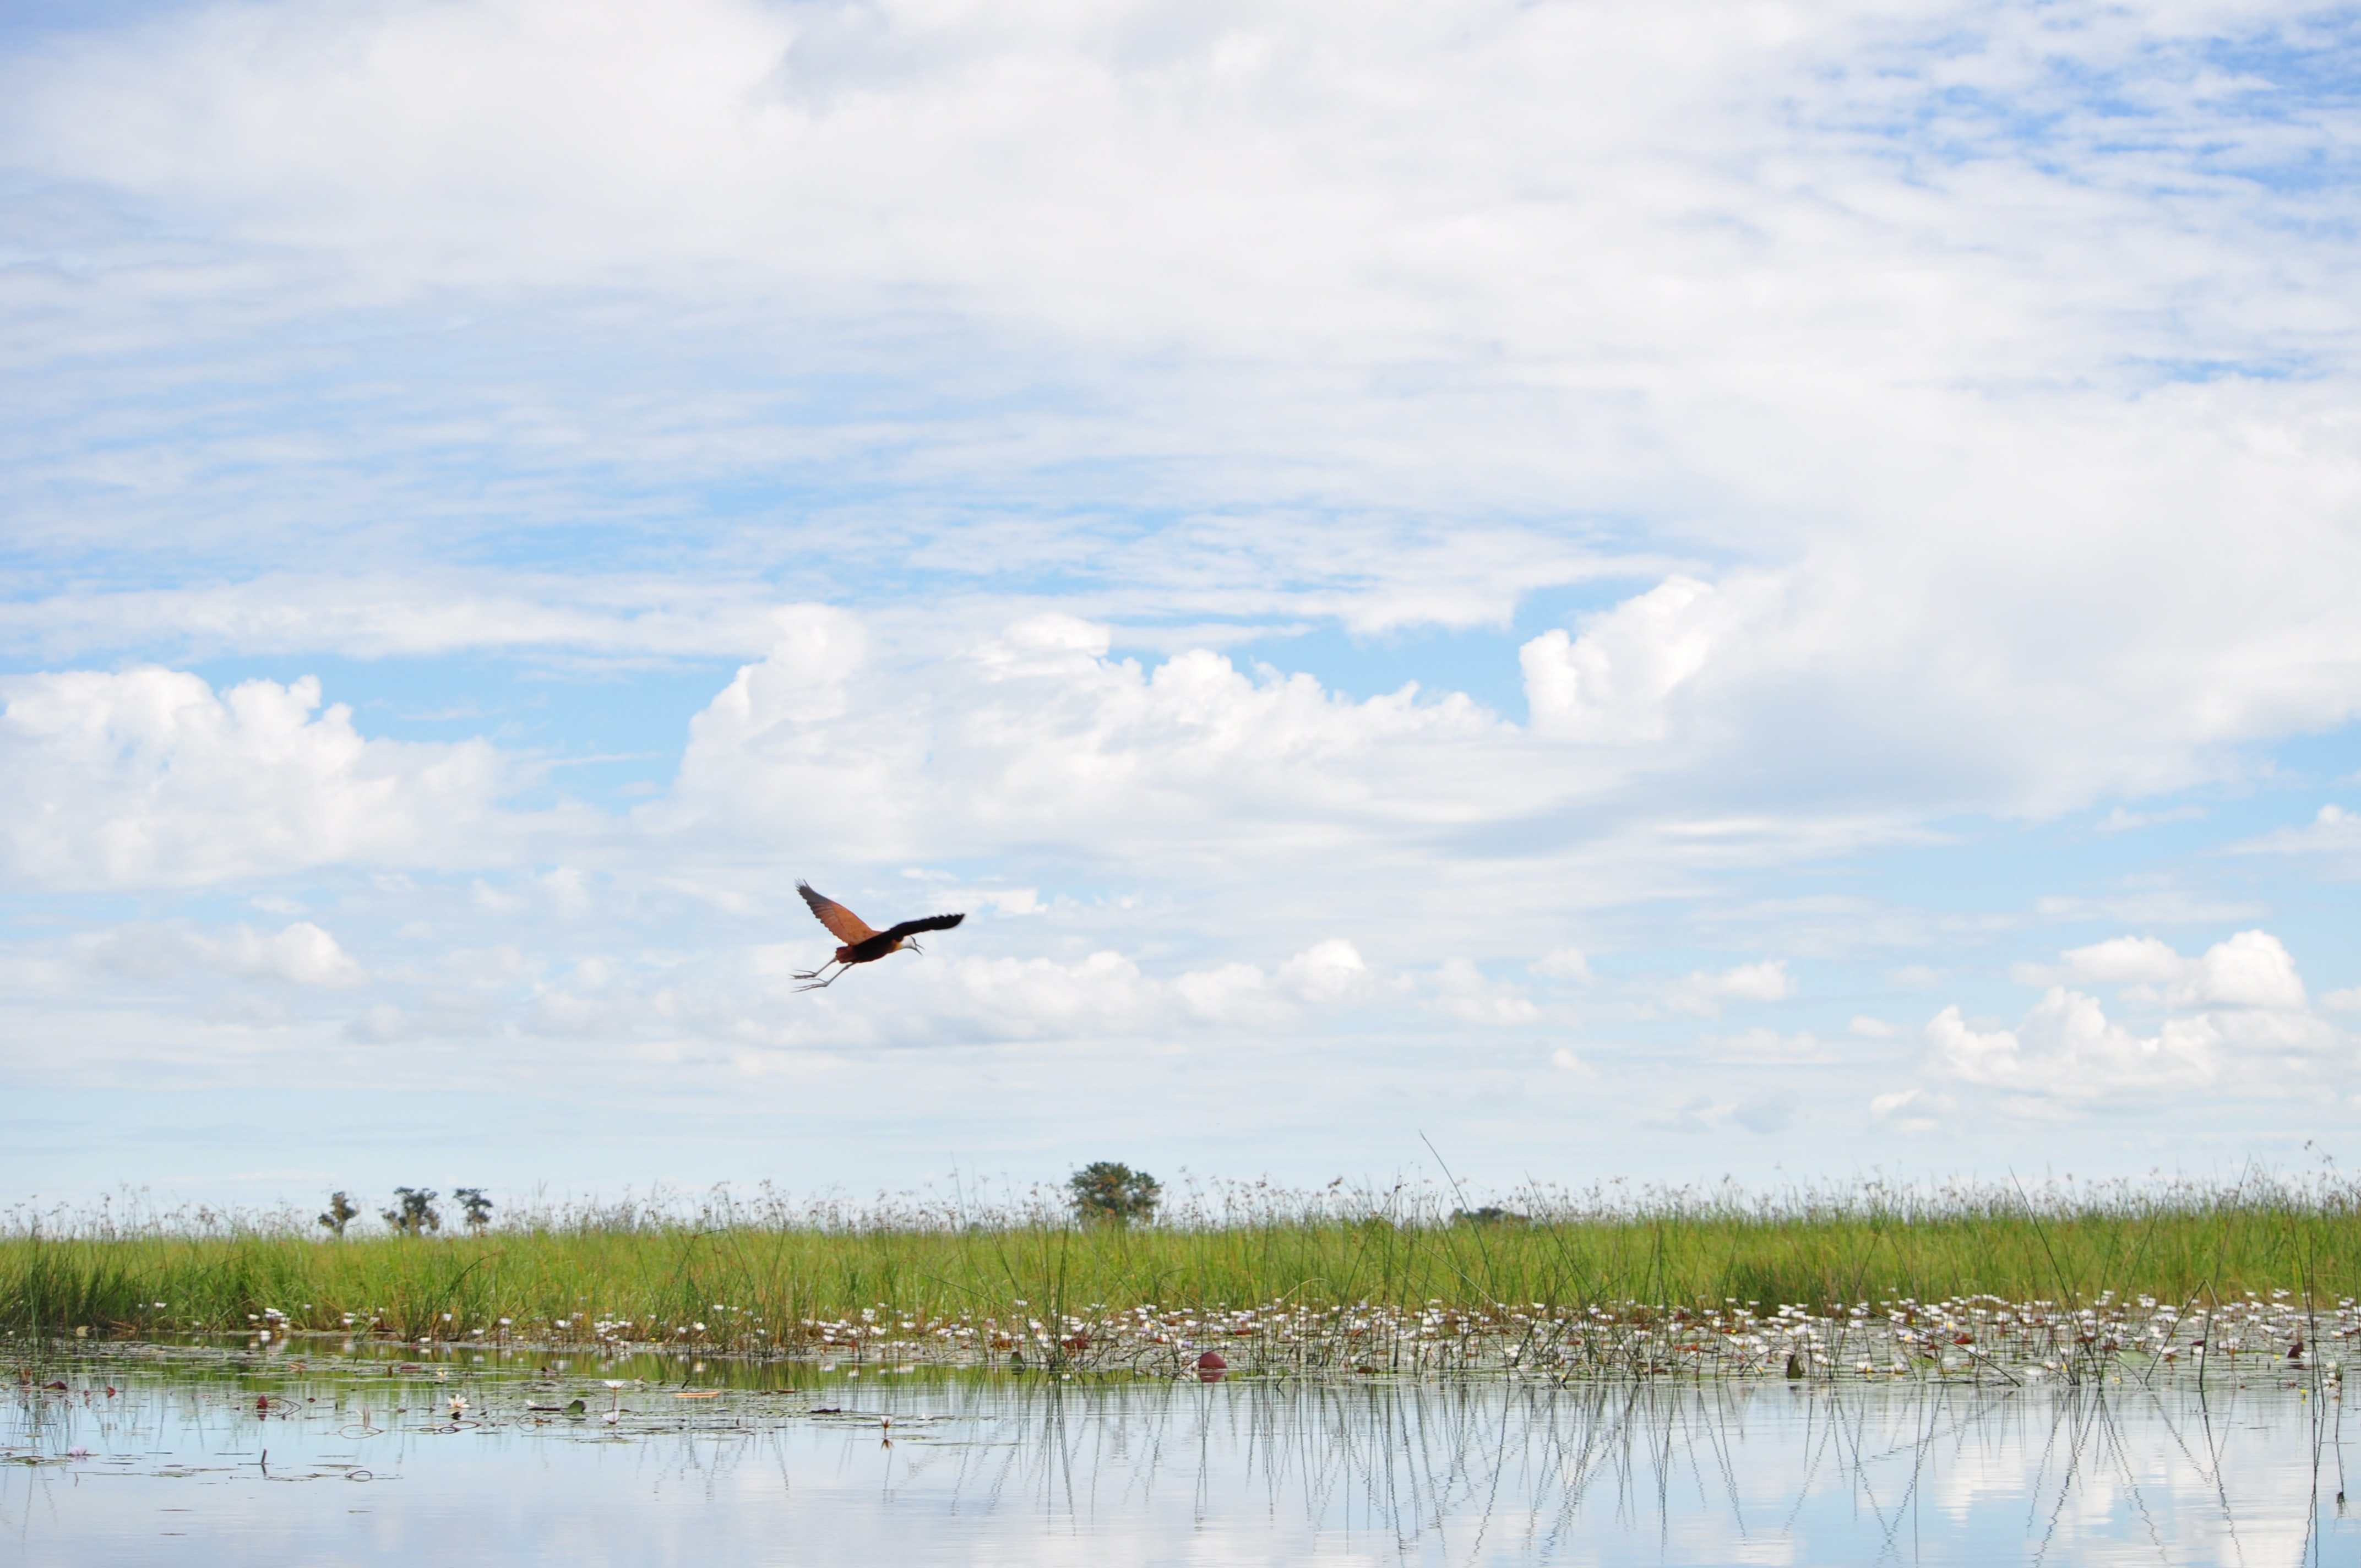 red and black bird on flight above body of water